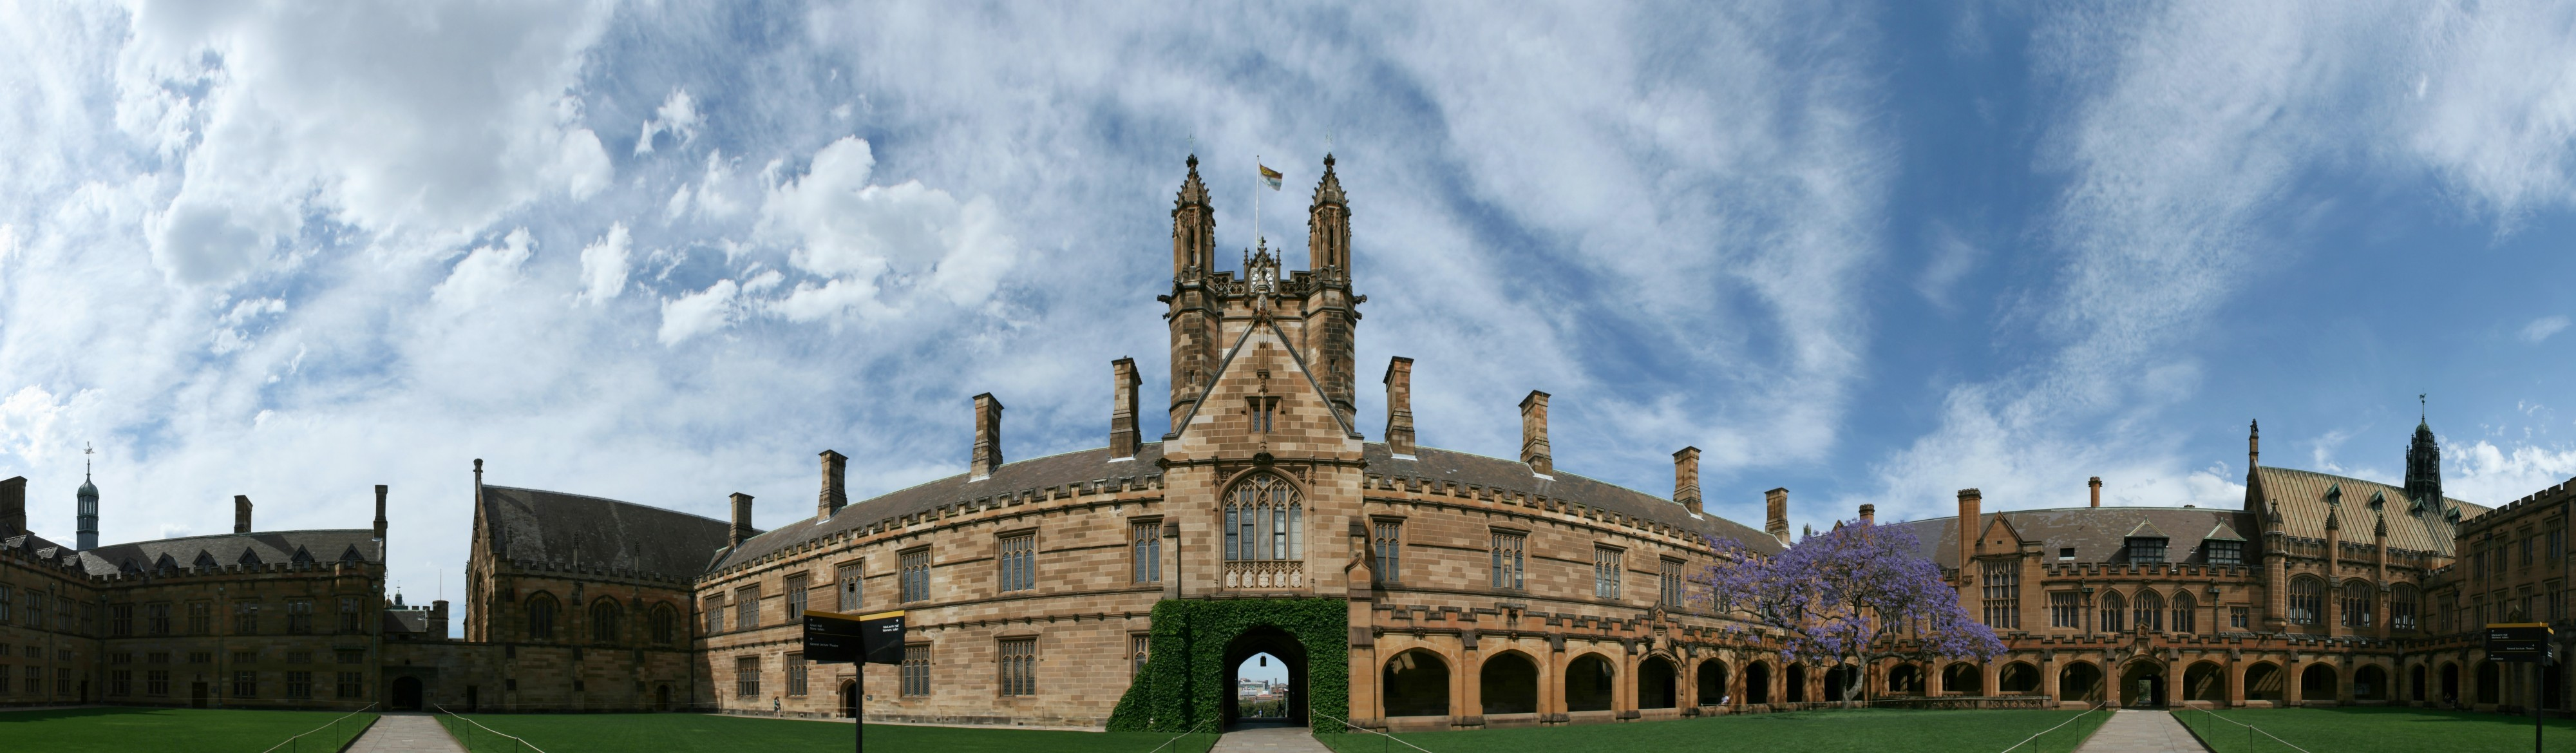 SydneyUniversity MainQuadrangle panorama 270